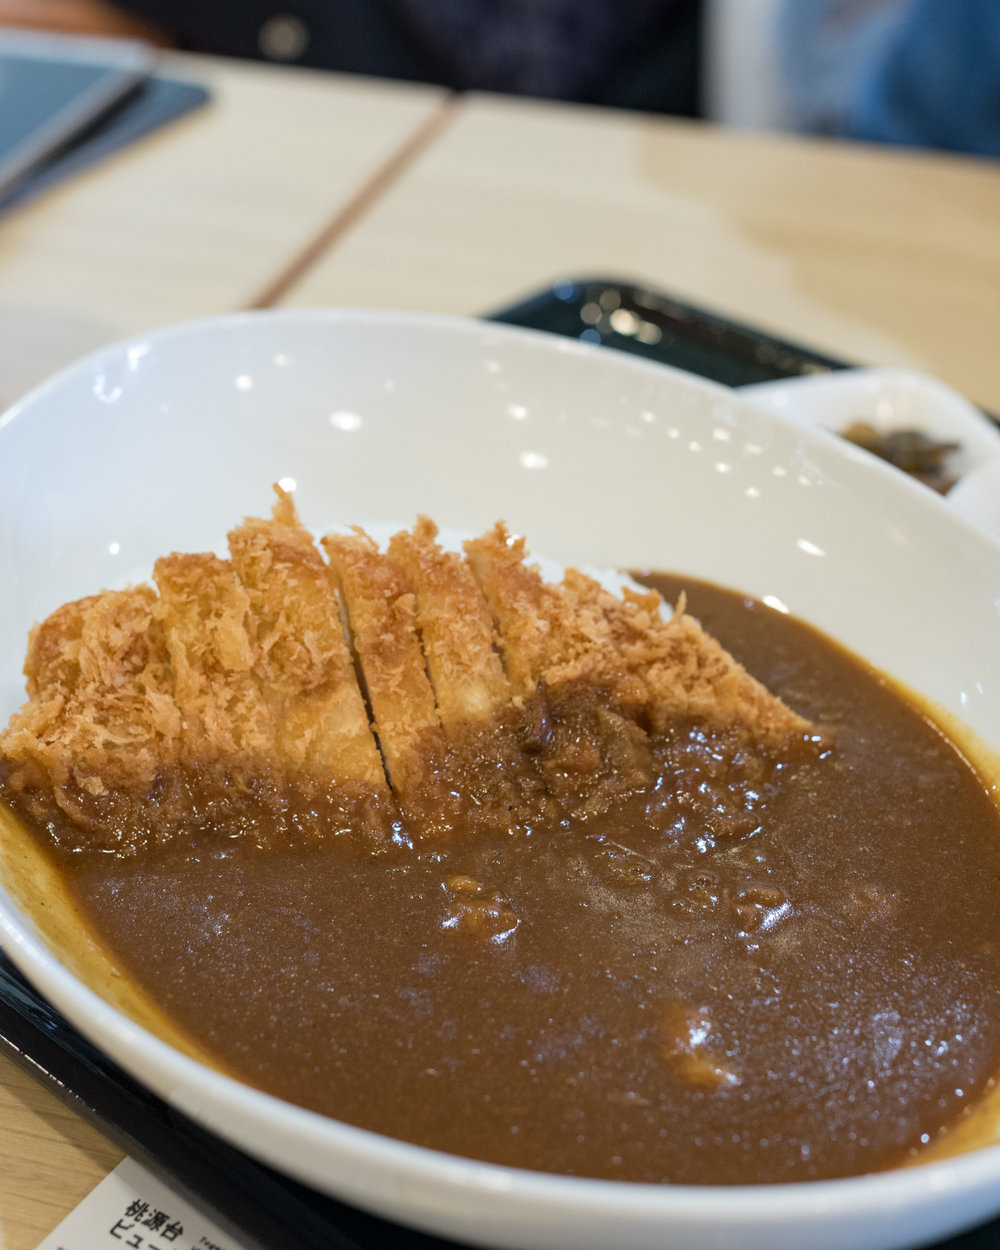 Curry Rice at Togendai Station  Travel Guide for Day-trip to Hakone from Tokyo